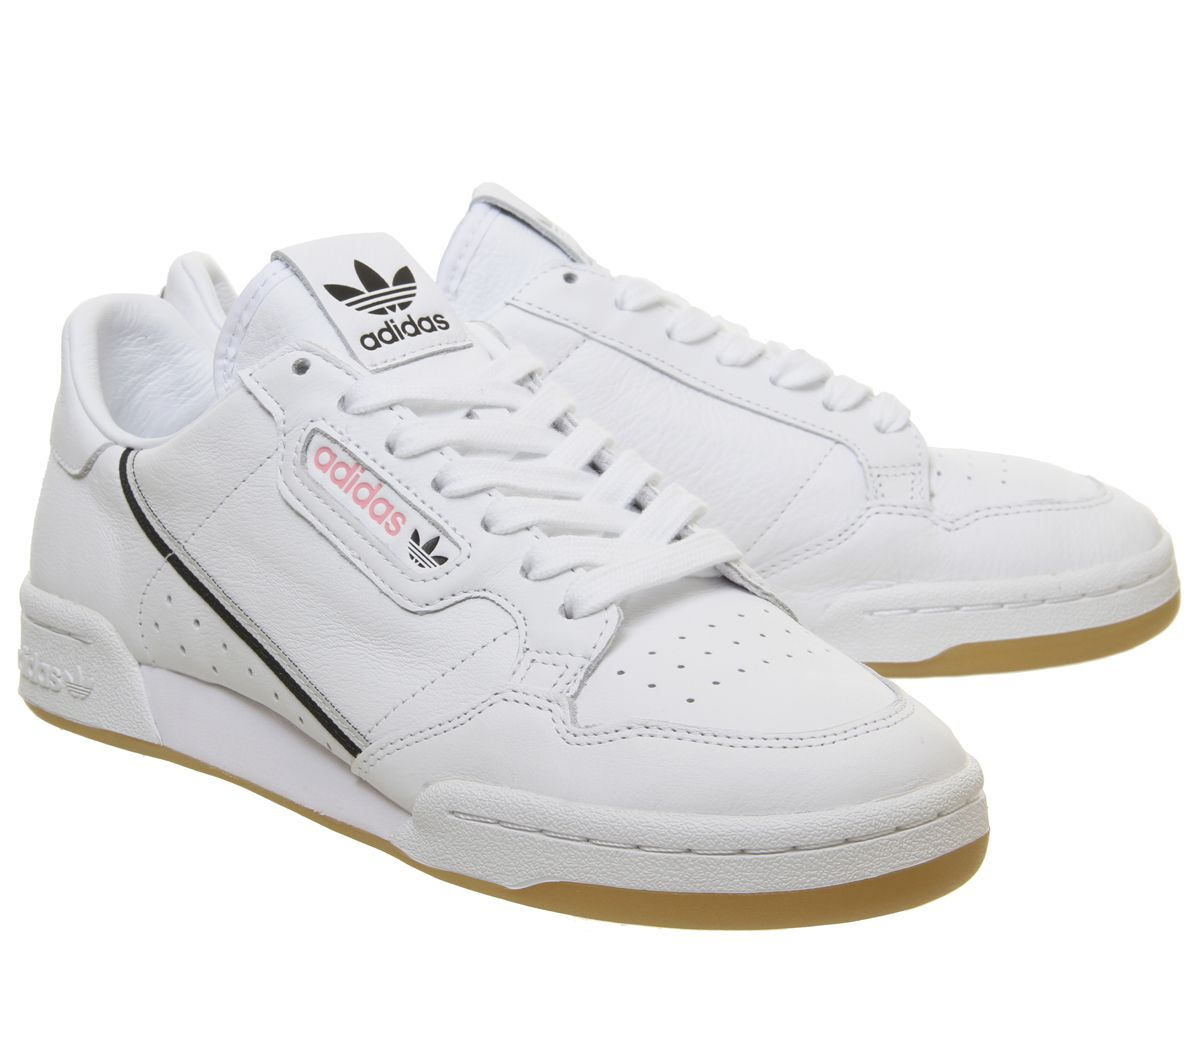 differently fb97f 62a2f Sentinel Adidas Continental 80 S White Grey Core Black Pink Gum Tfl  Trainers Shoes